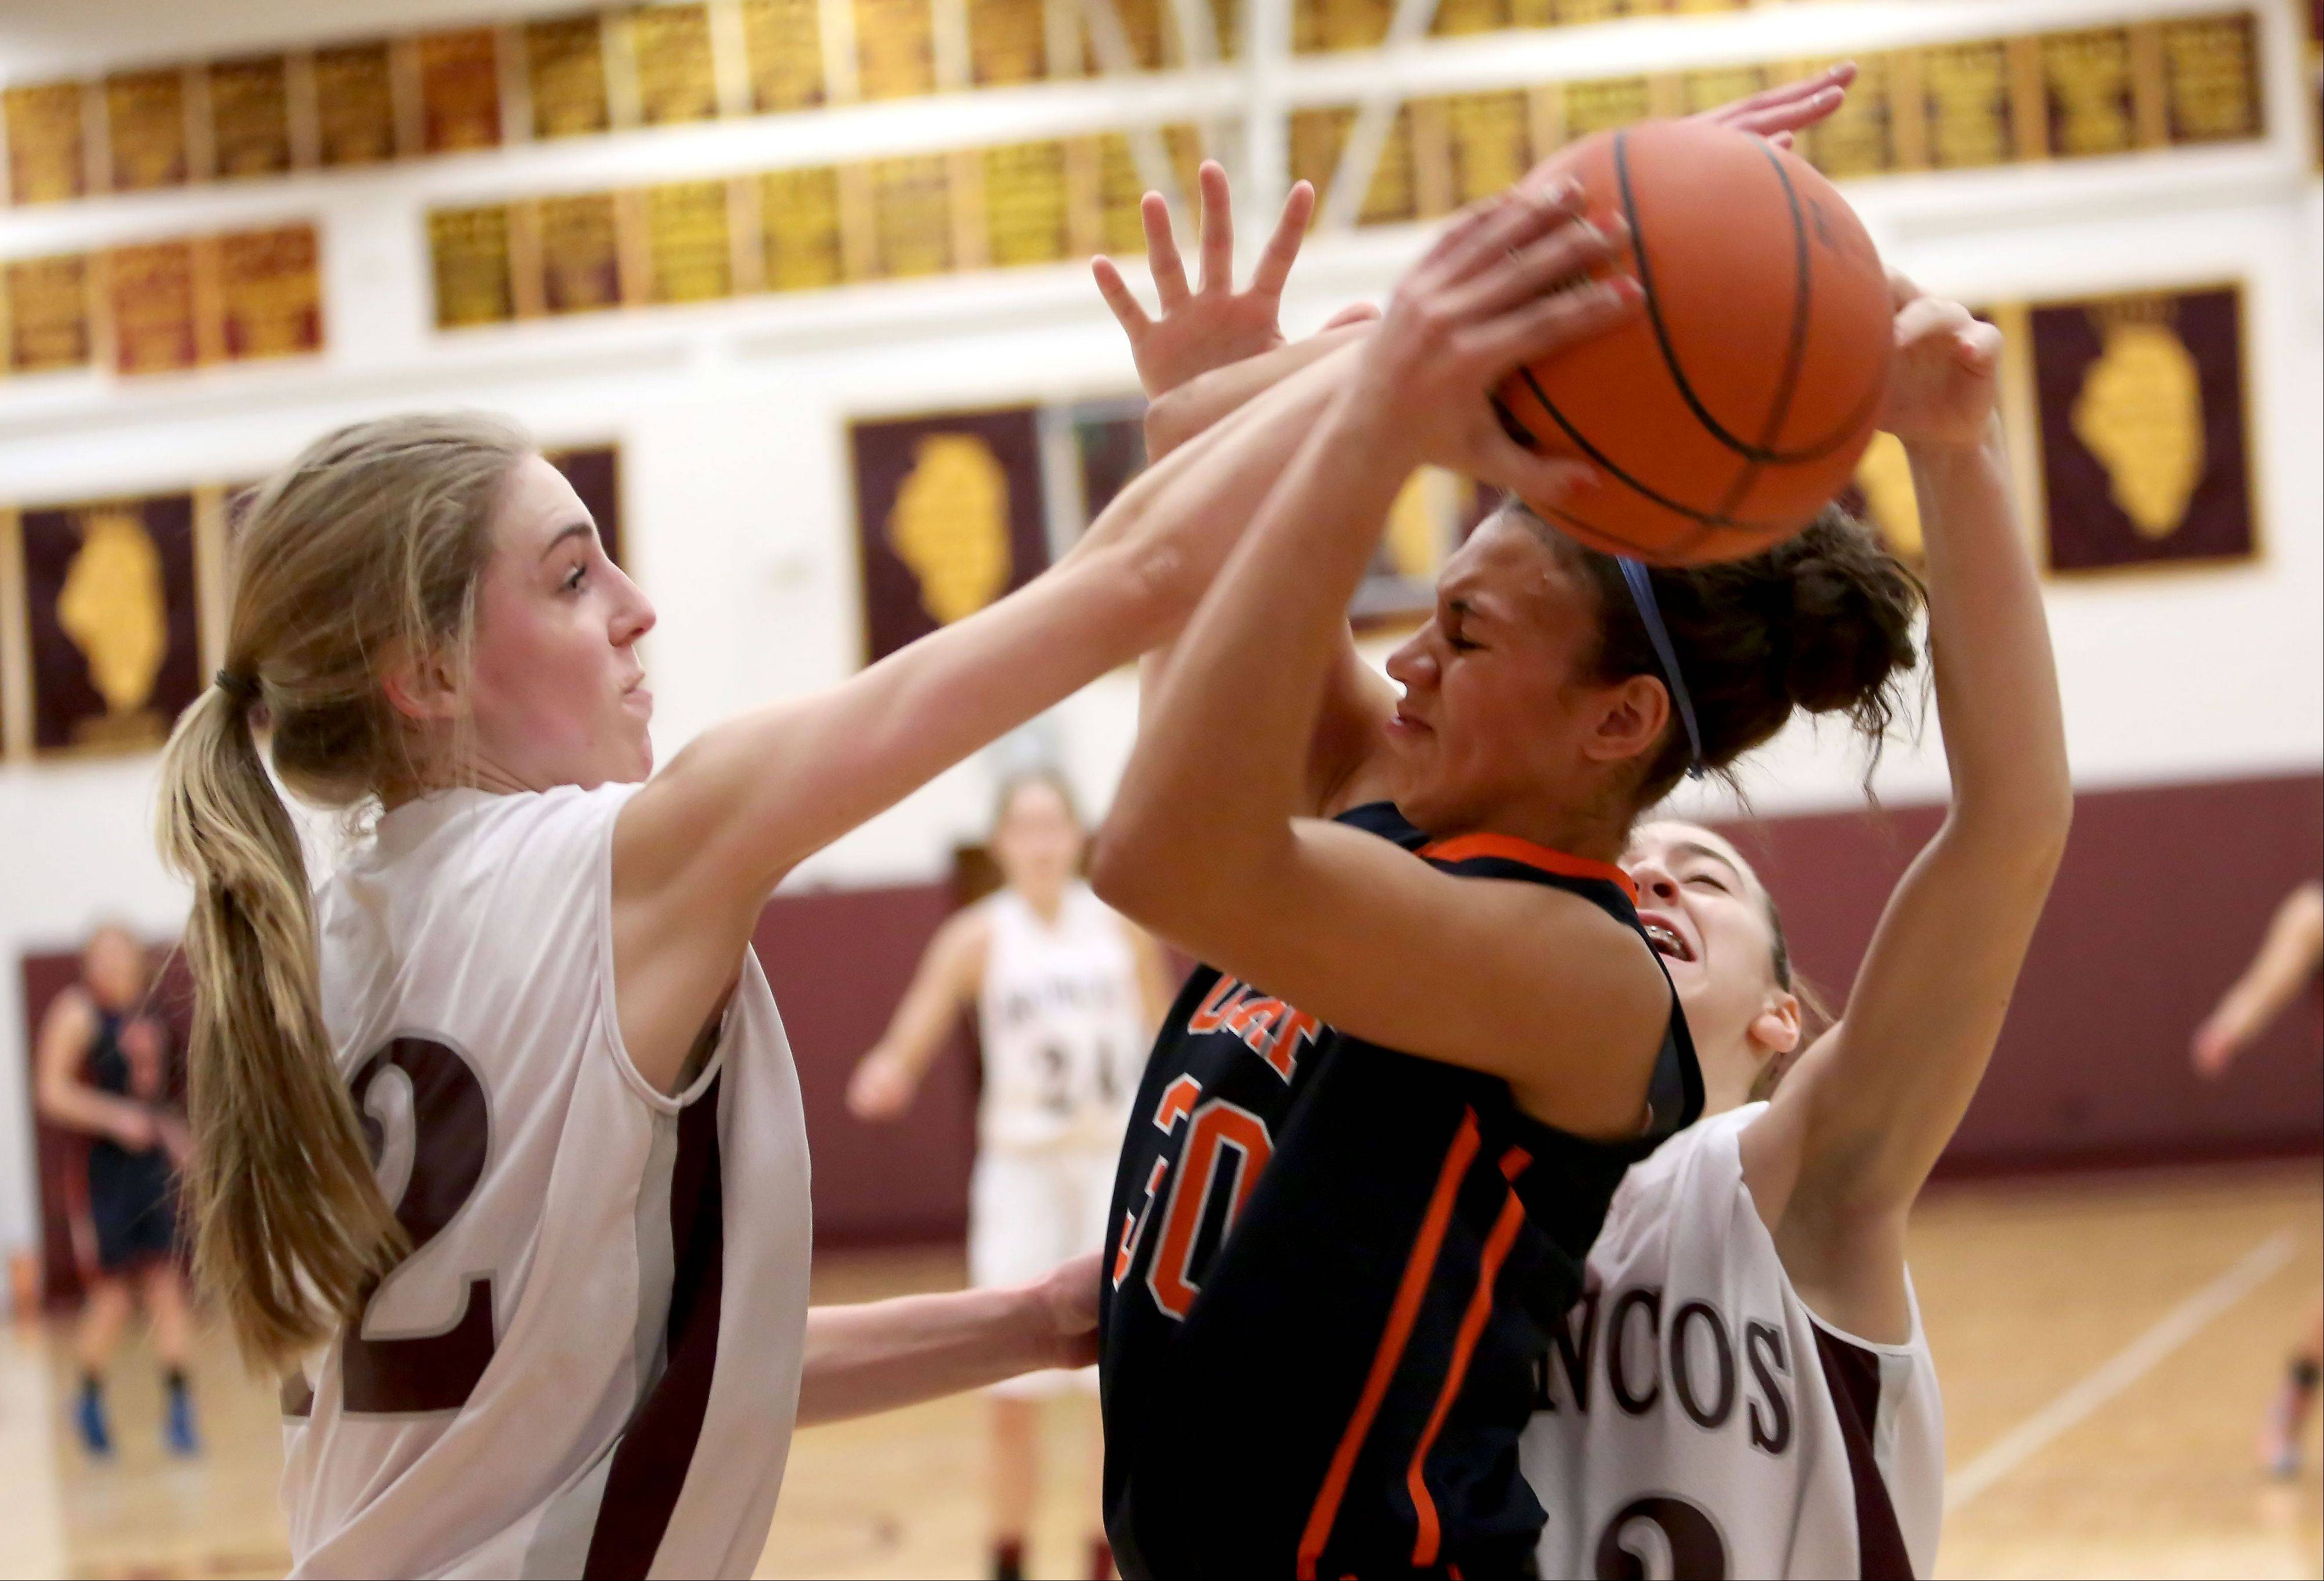 Kelly Karlis, left, and Claudia Kunzer, right, of Montini put the pressure on Oak Park River Forest's Chardonnay Harris Monday at the Montini Christmas tournament in Lombard.